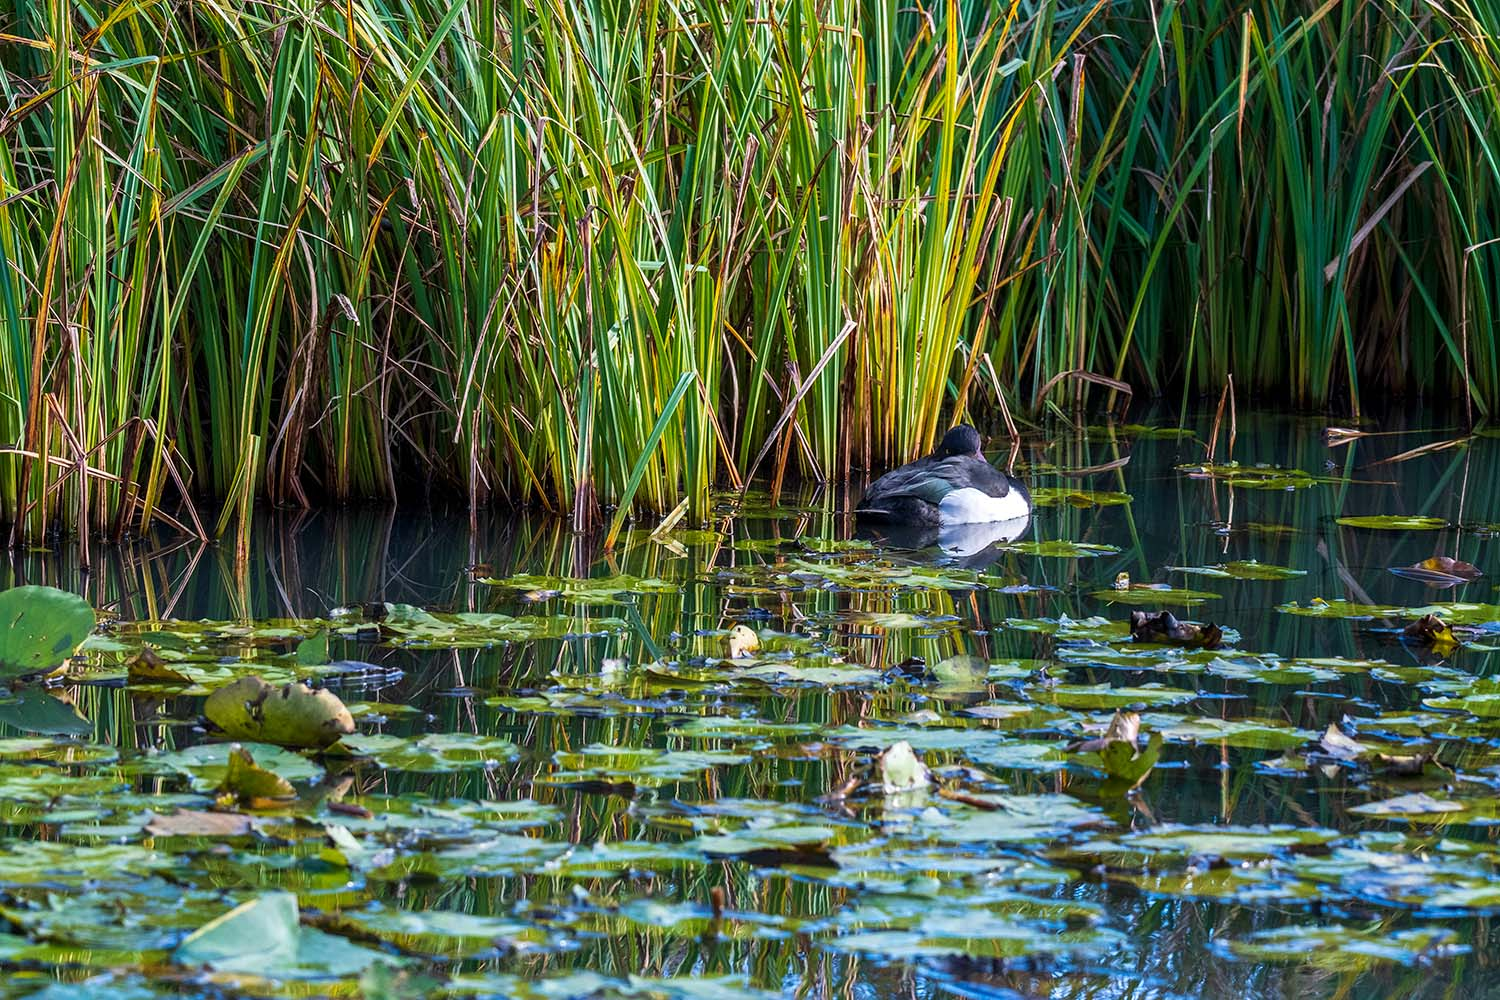 scene with reeds, water, and tufted duck